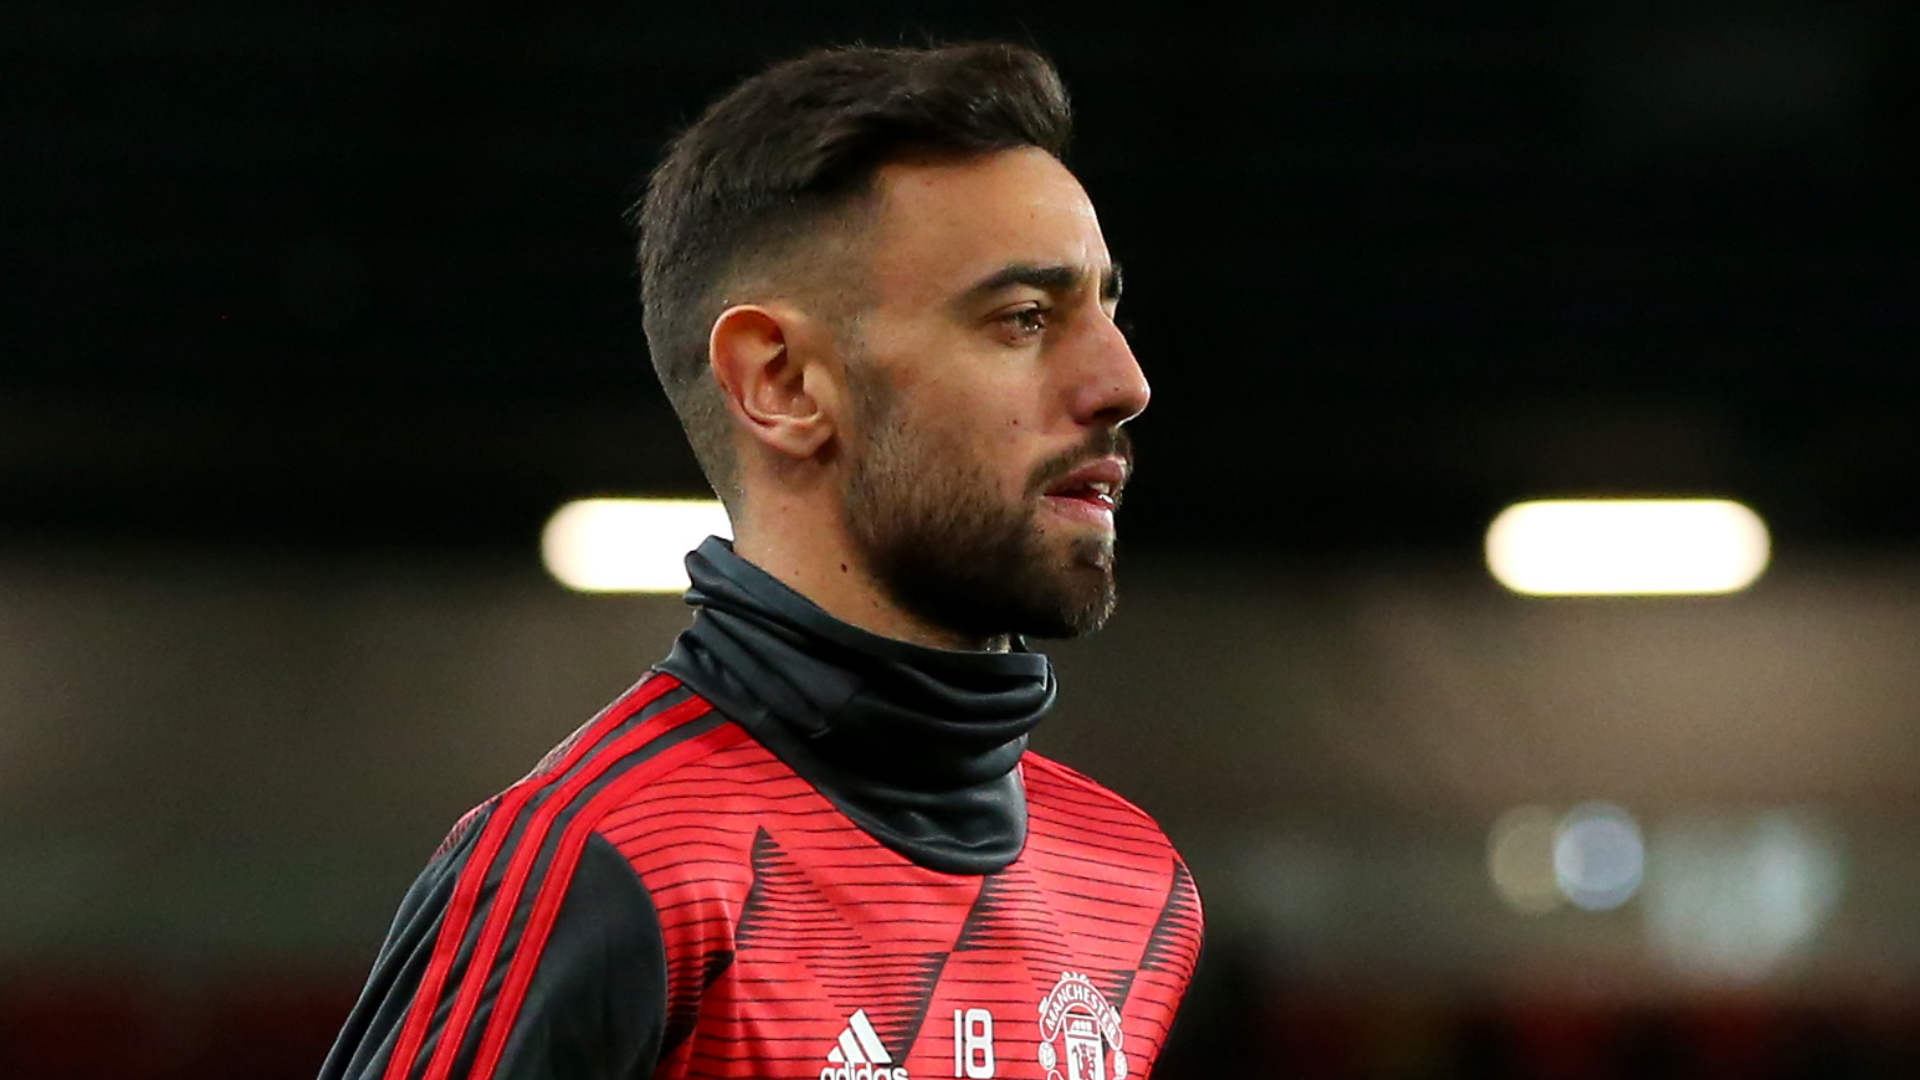 Man Utd star Bruno Fernandes has affected key Ed Woodward transfer decision l Duncan Castles - Bóng Đá